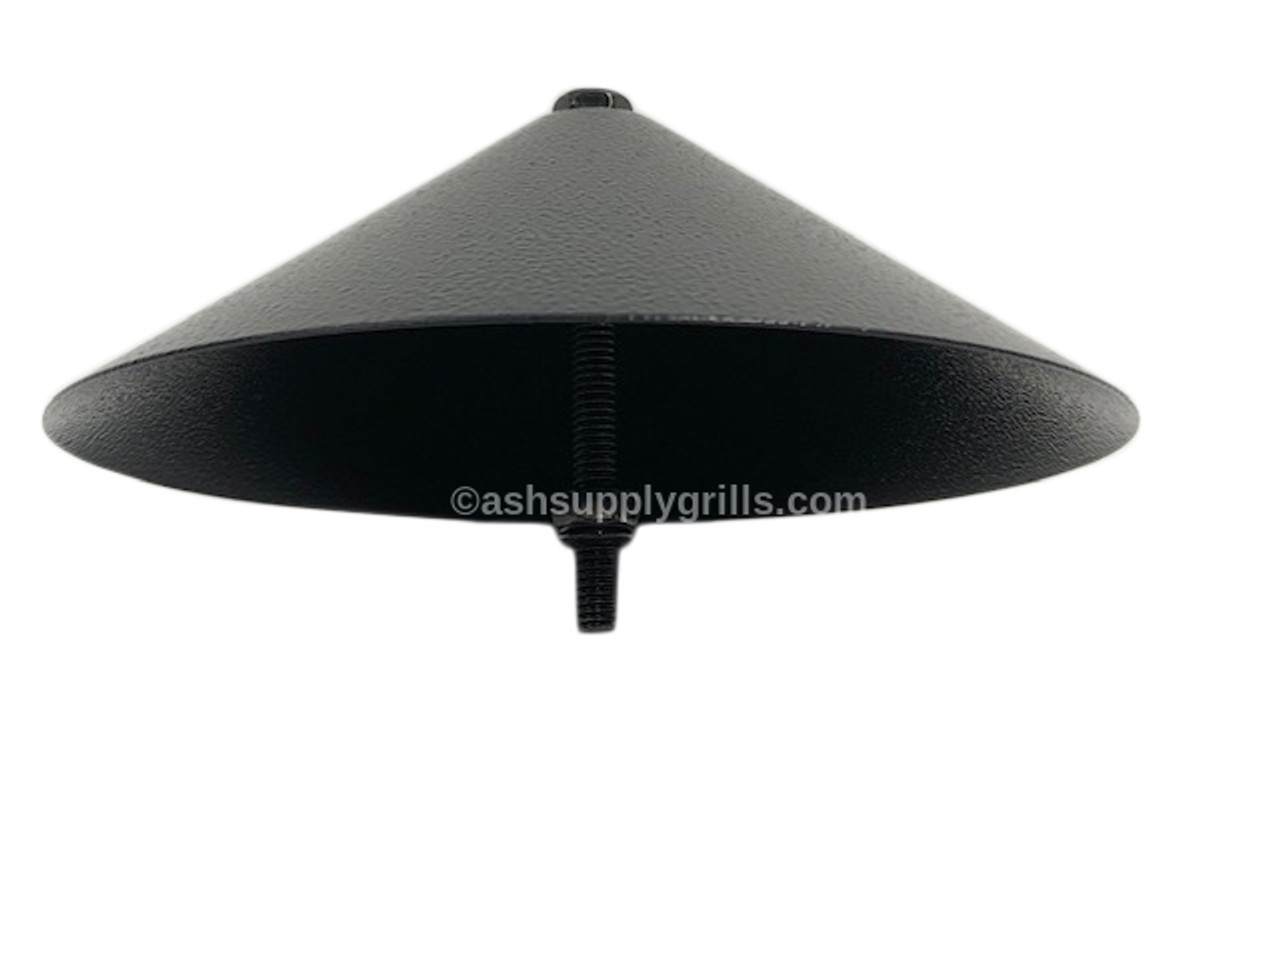 TRAEGER PELLET GRILLS GENUINE REPLACEMENT PART - BLACK CHIMNEY CAP WITH NUT AND STUD KIT0008